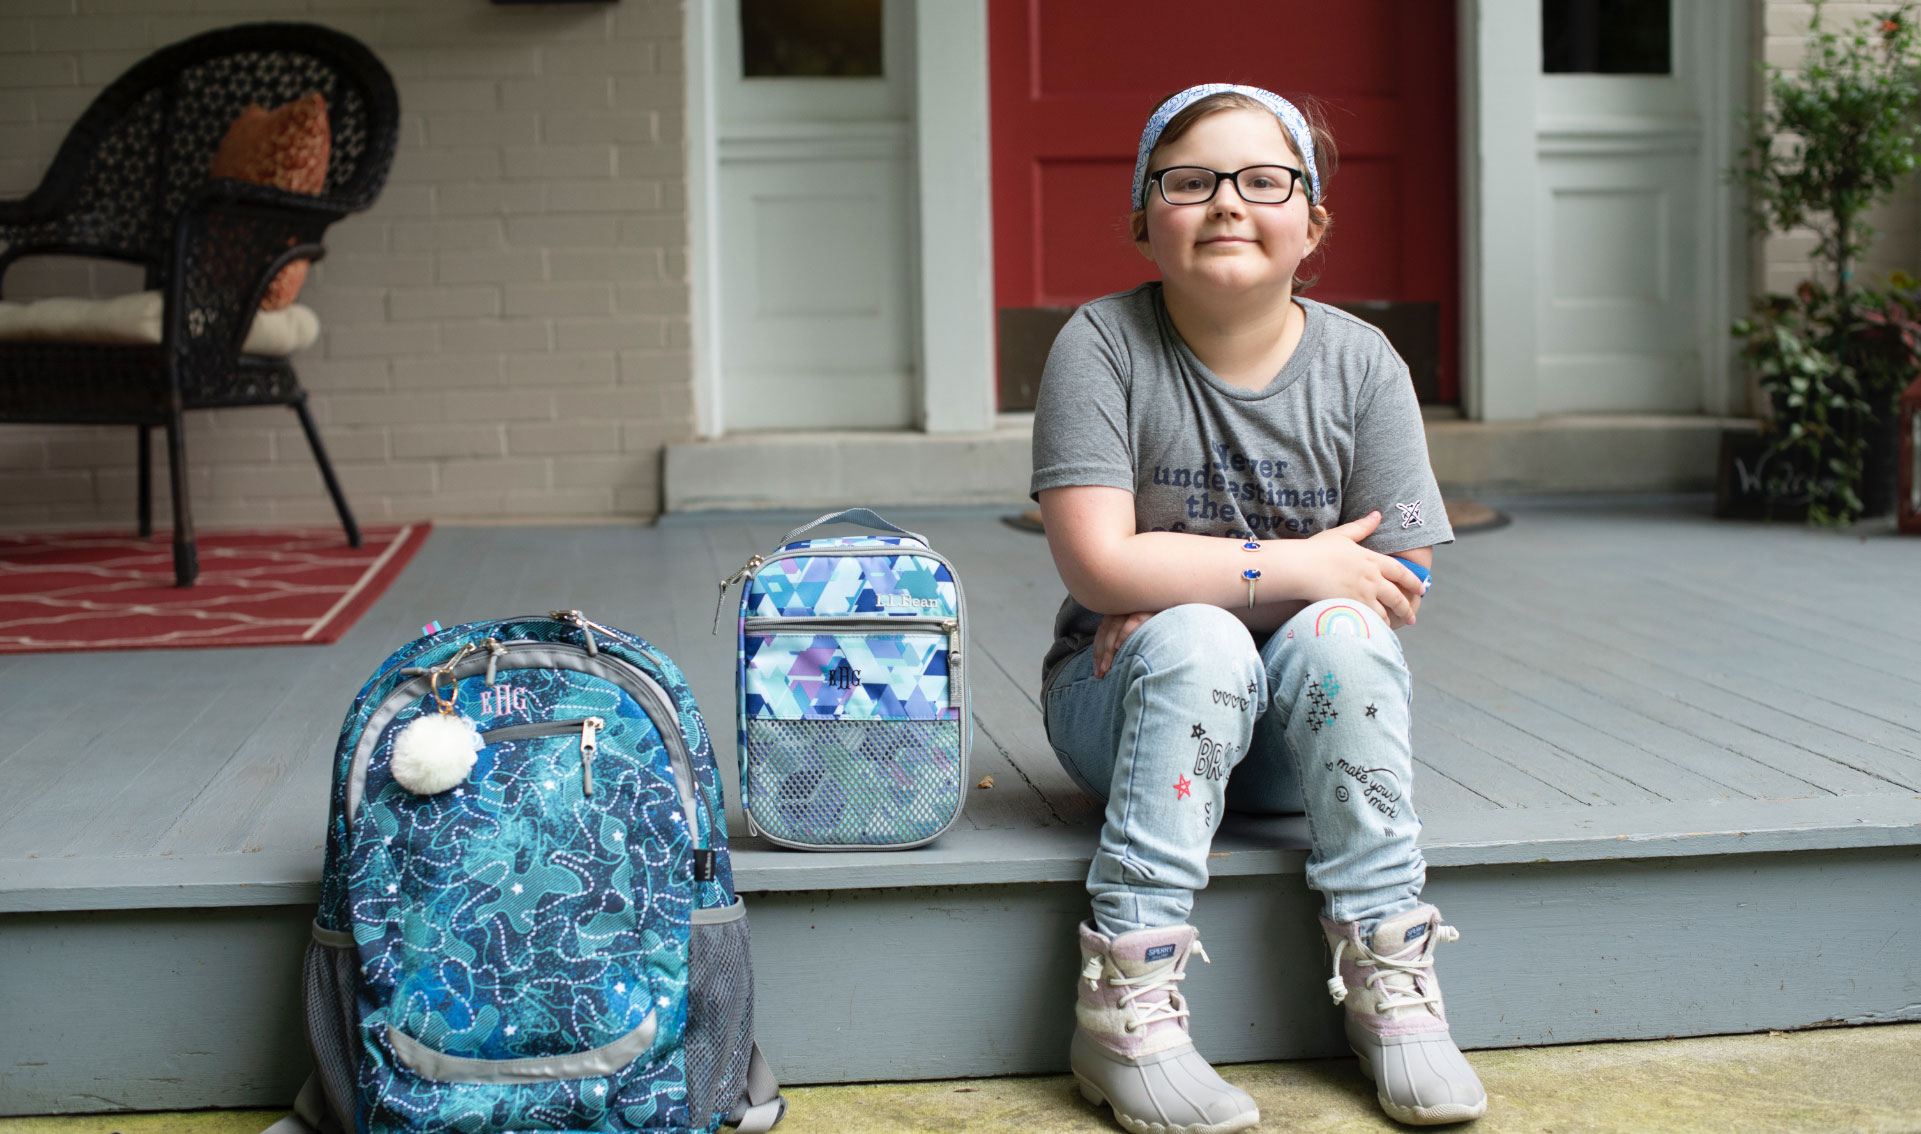 A photo of Ellie sitting on her front porch with her hands on her legs next to her school backpack and lunchbox.